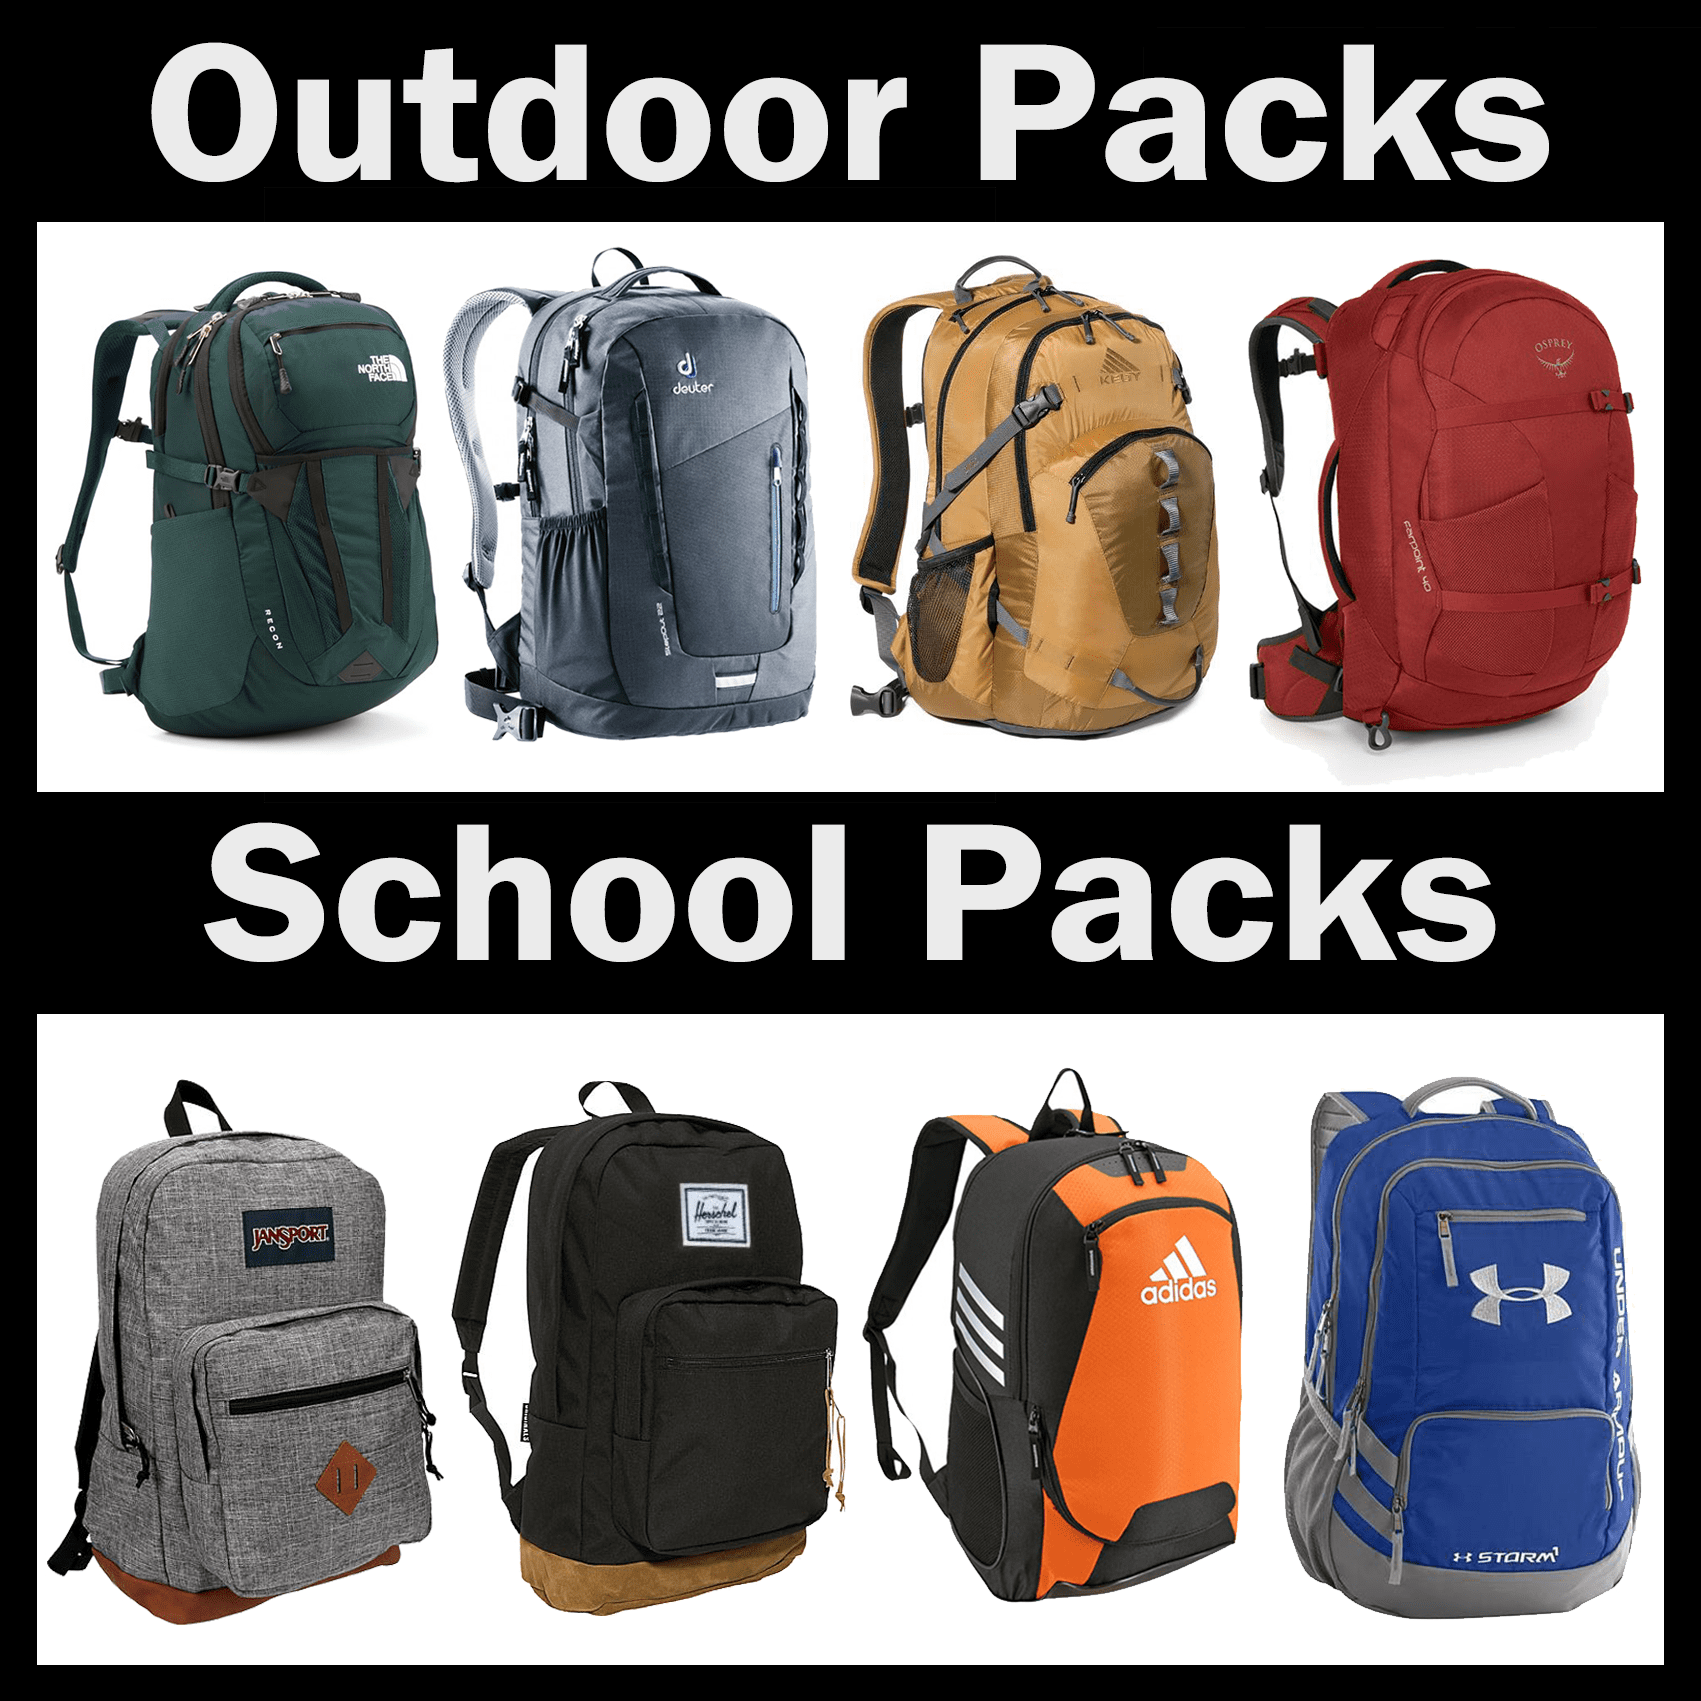 Fit any backpack!